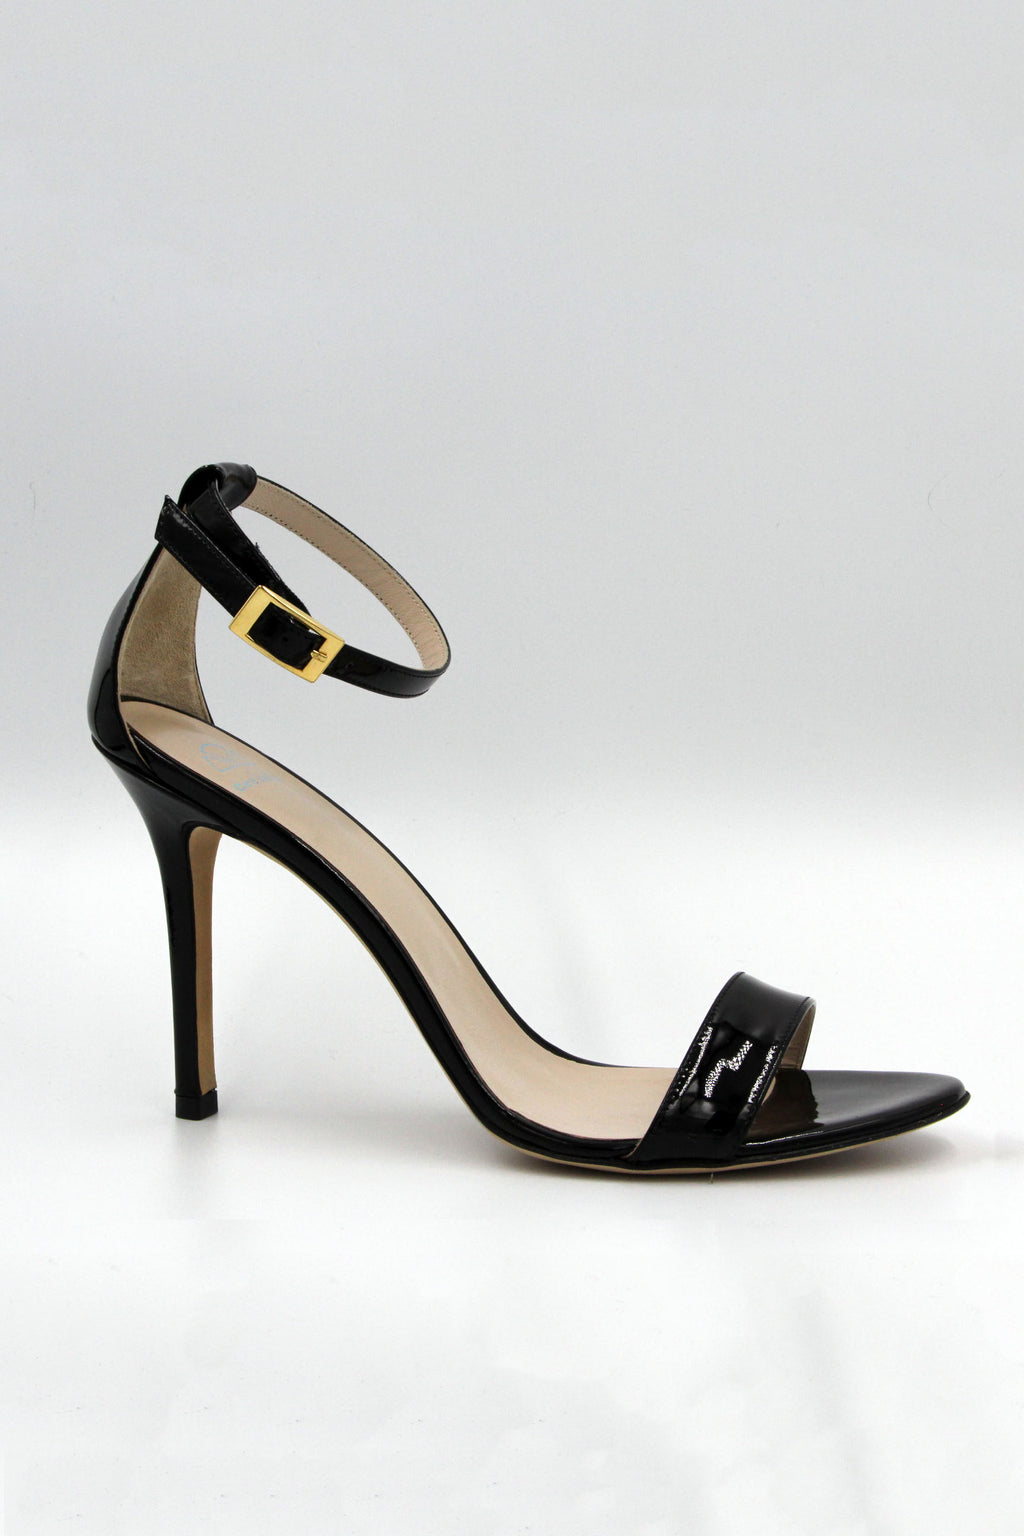 "DEE KELLER 3.5""/90MM HEEL Scheffy Single Band Patent Leather Shoe"